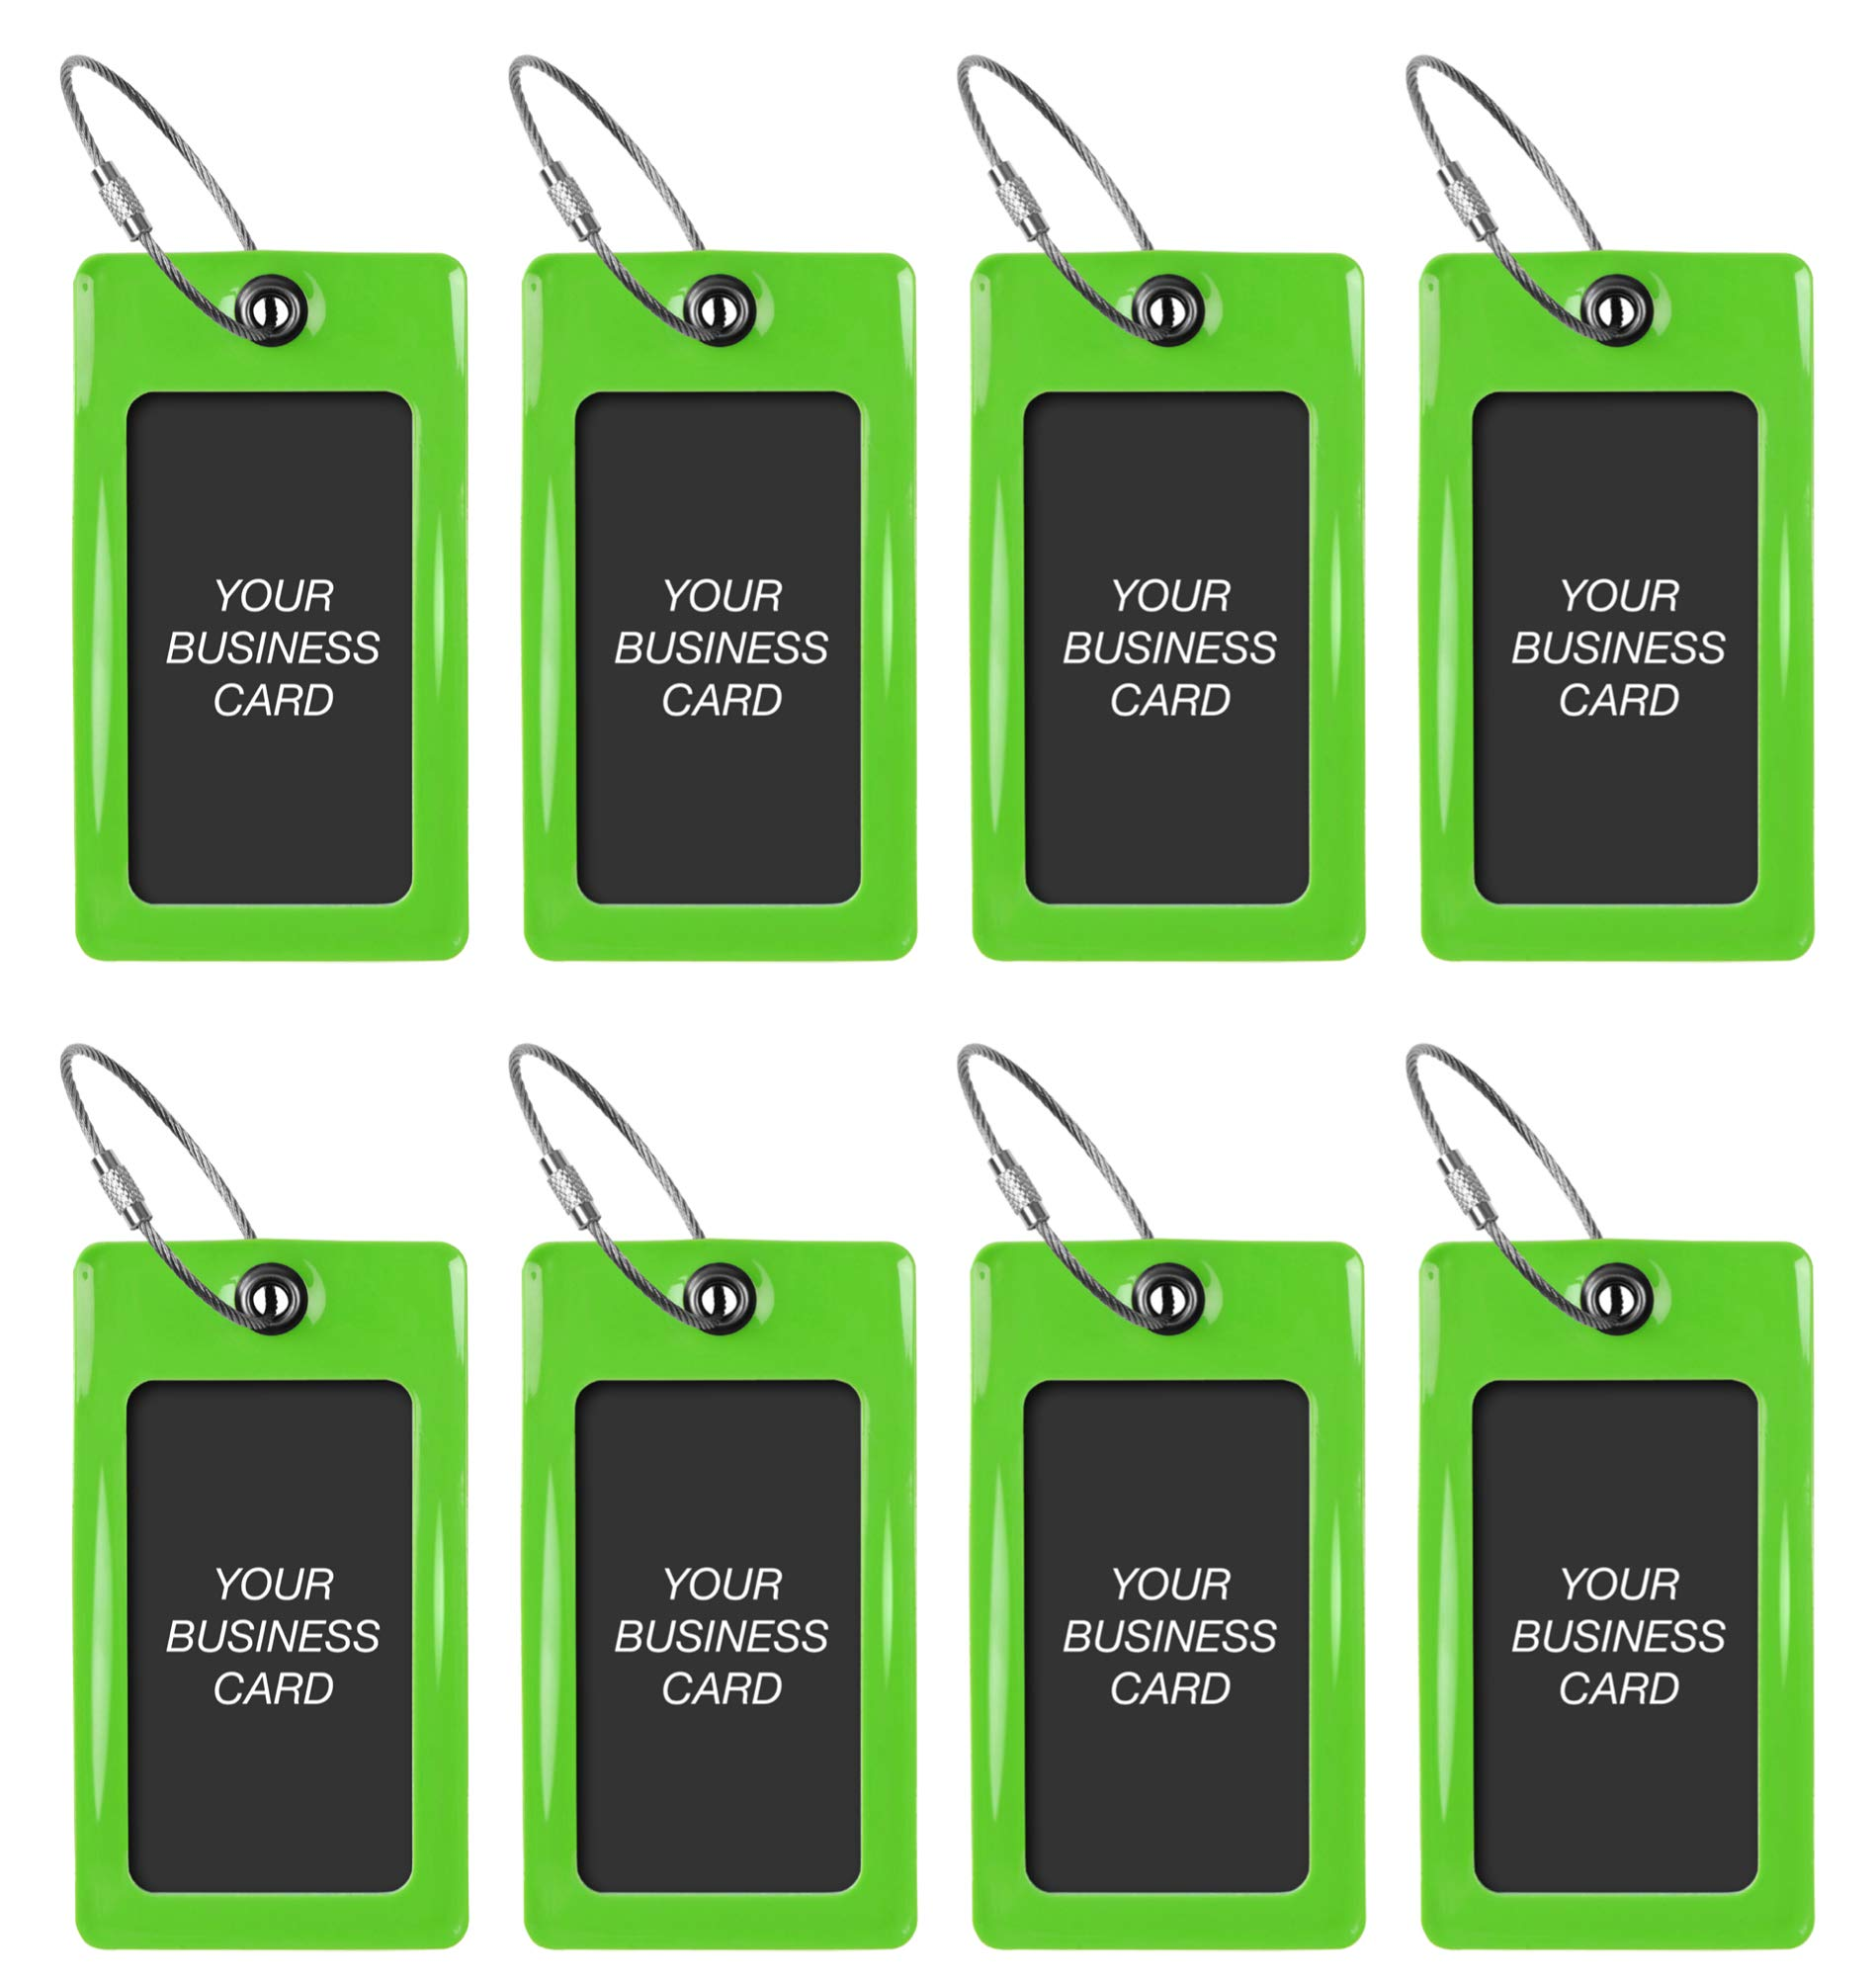 Luggage Tags TUFFTAAG for Business Cards, Flexible Travel Labels, 8 Pack Bundle (8 Green) by ProudGuy